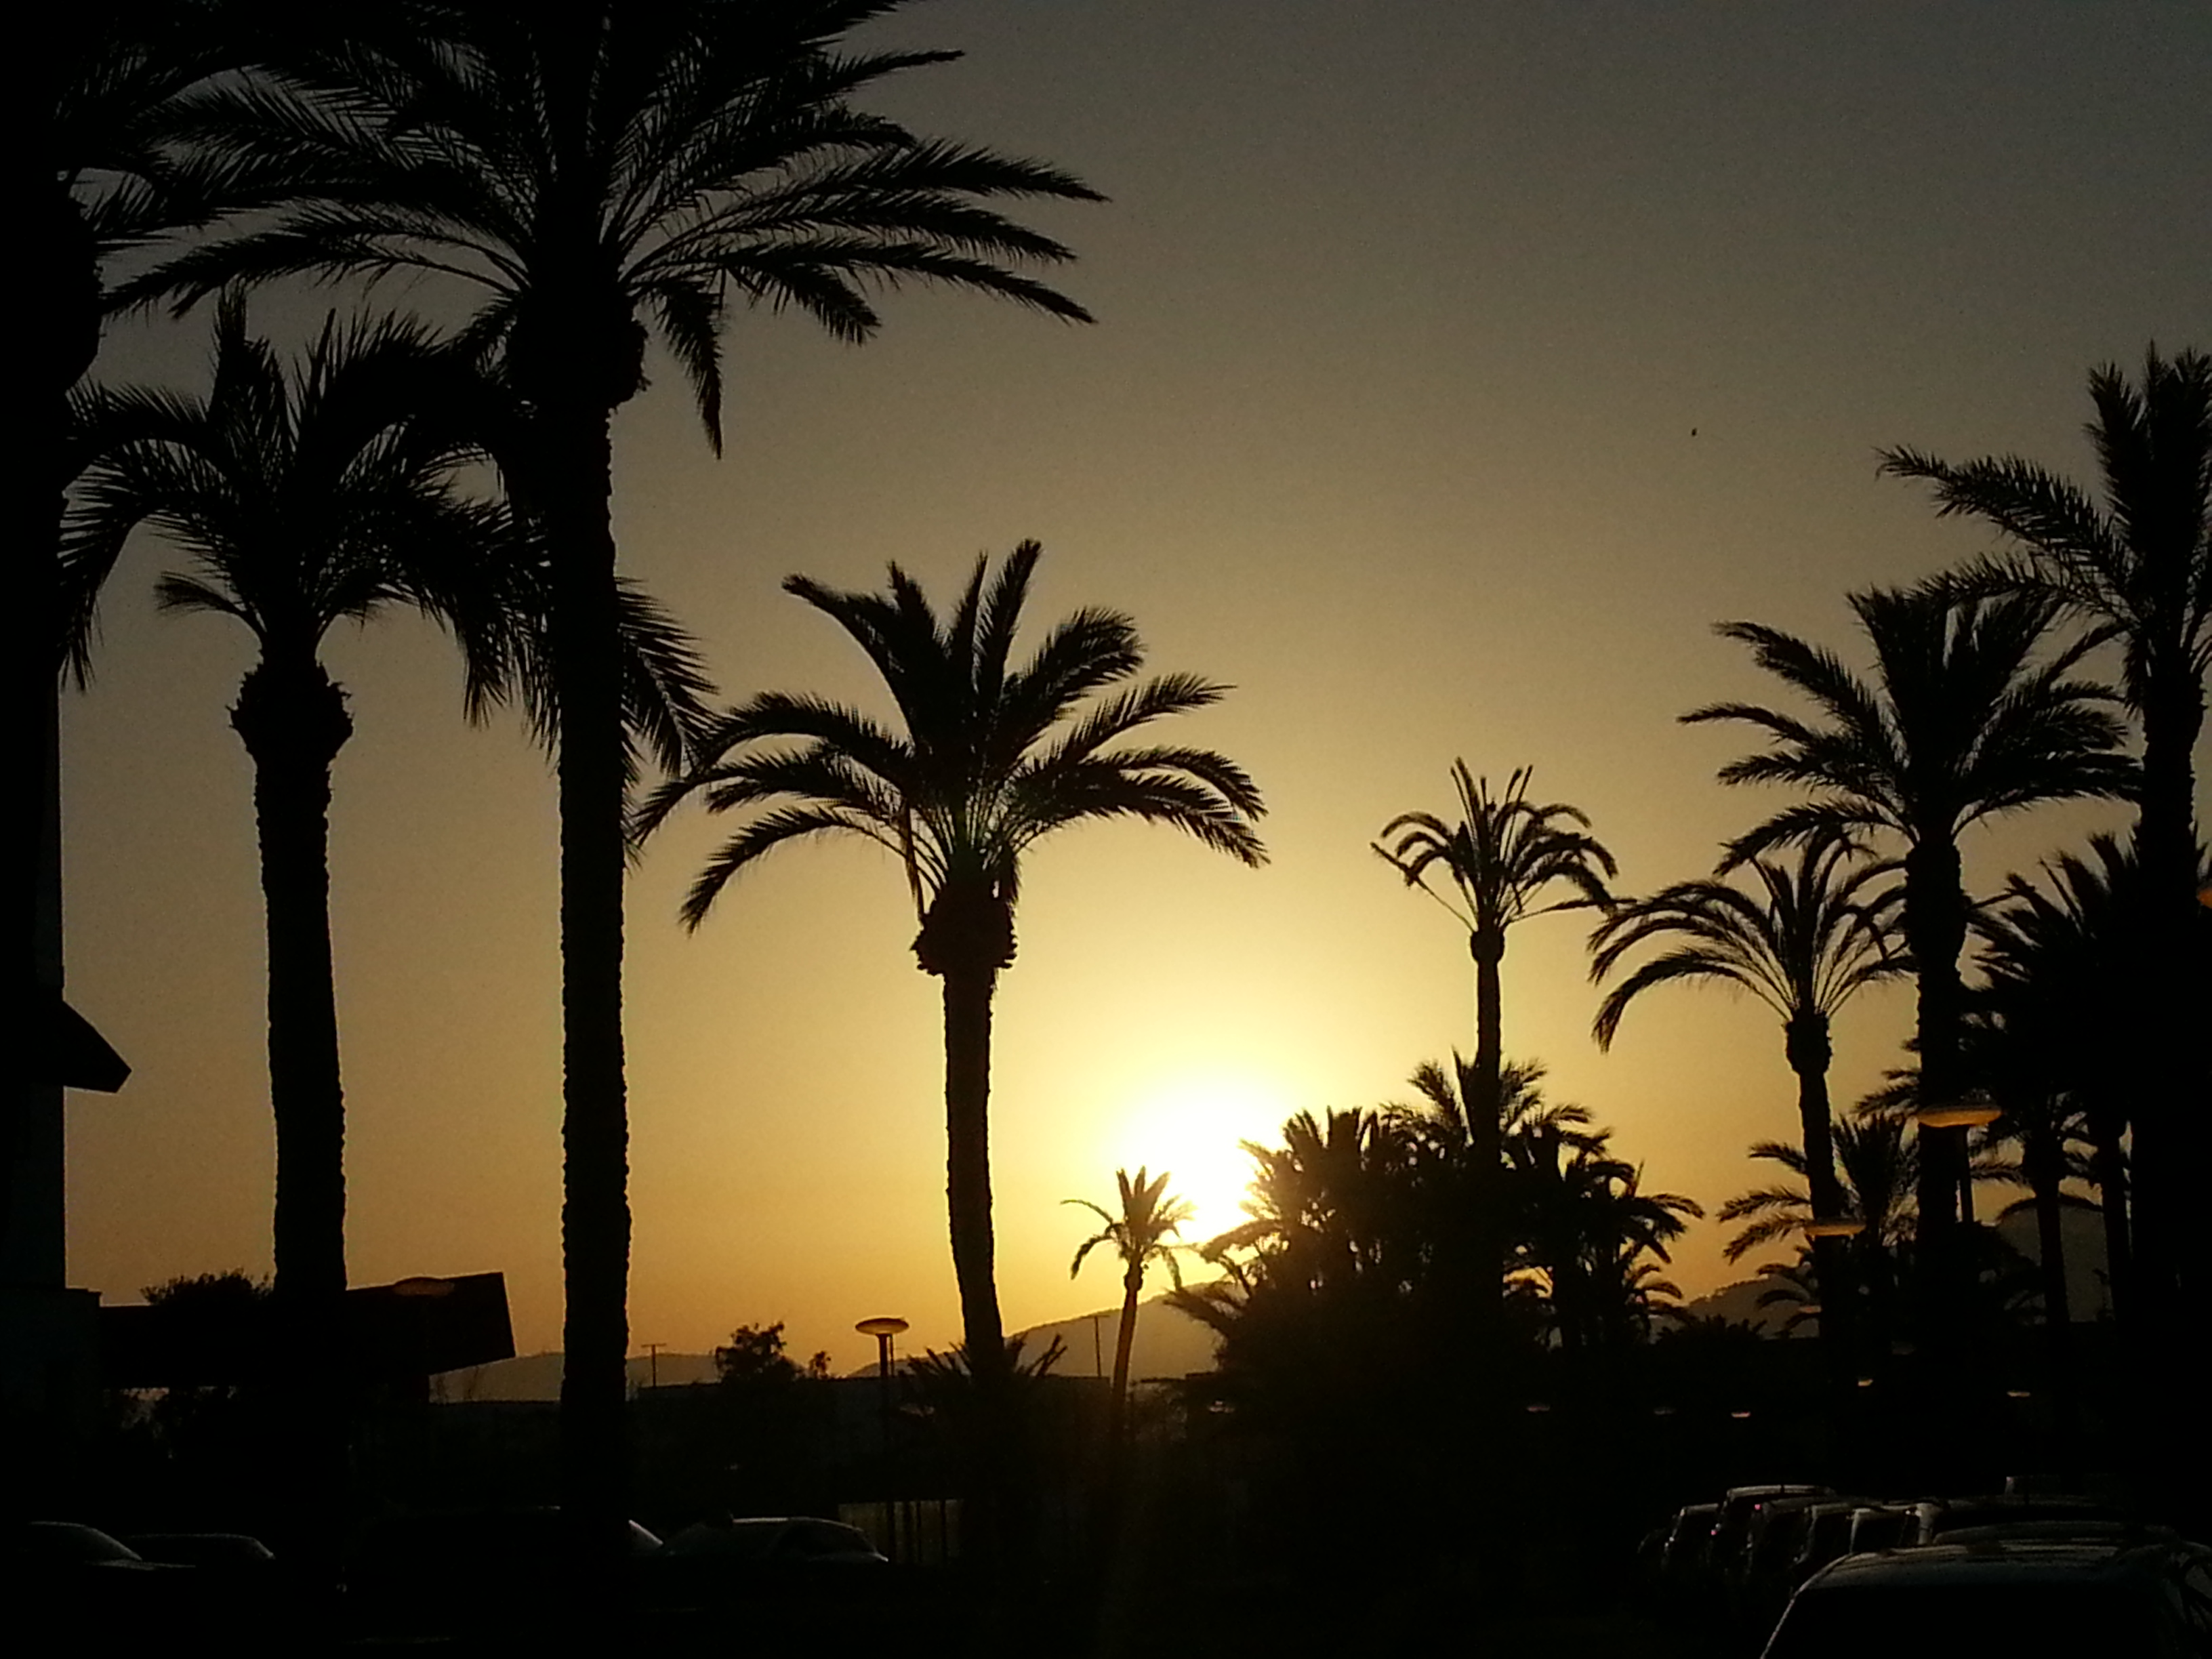 Ibiza 19 sunset palm trees